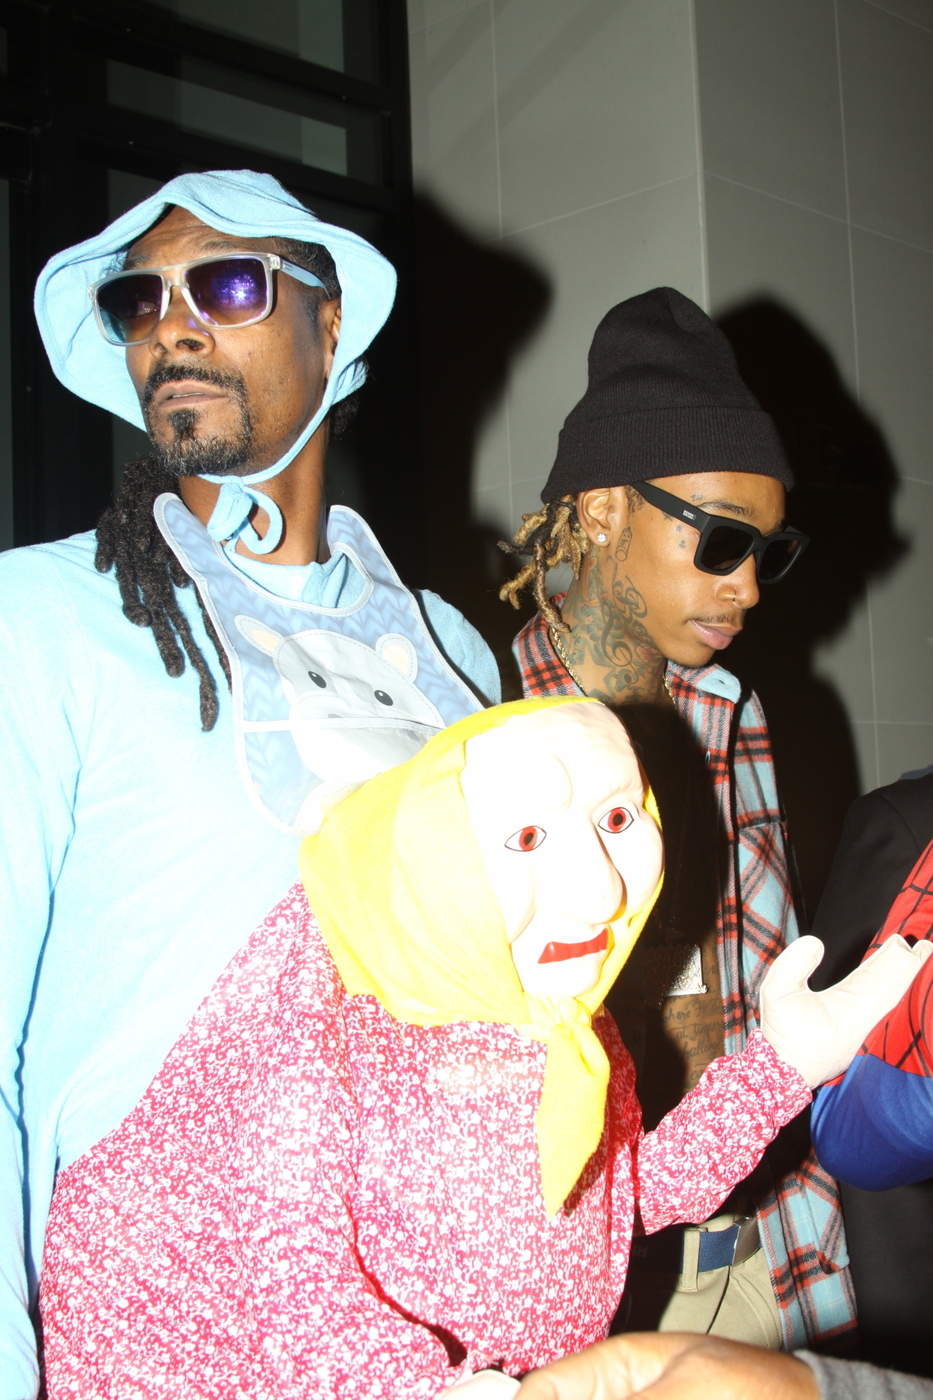 snoop dogg arrives at catch la dressed in a bizarre mother/child